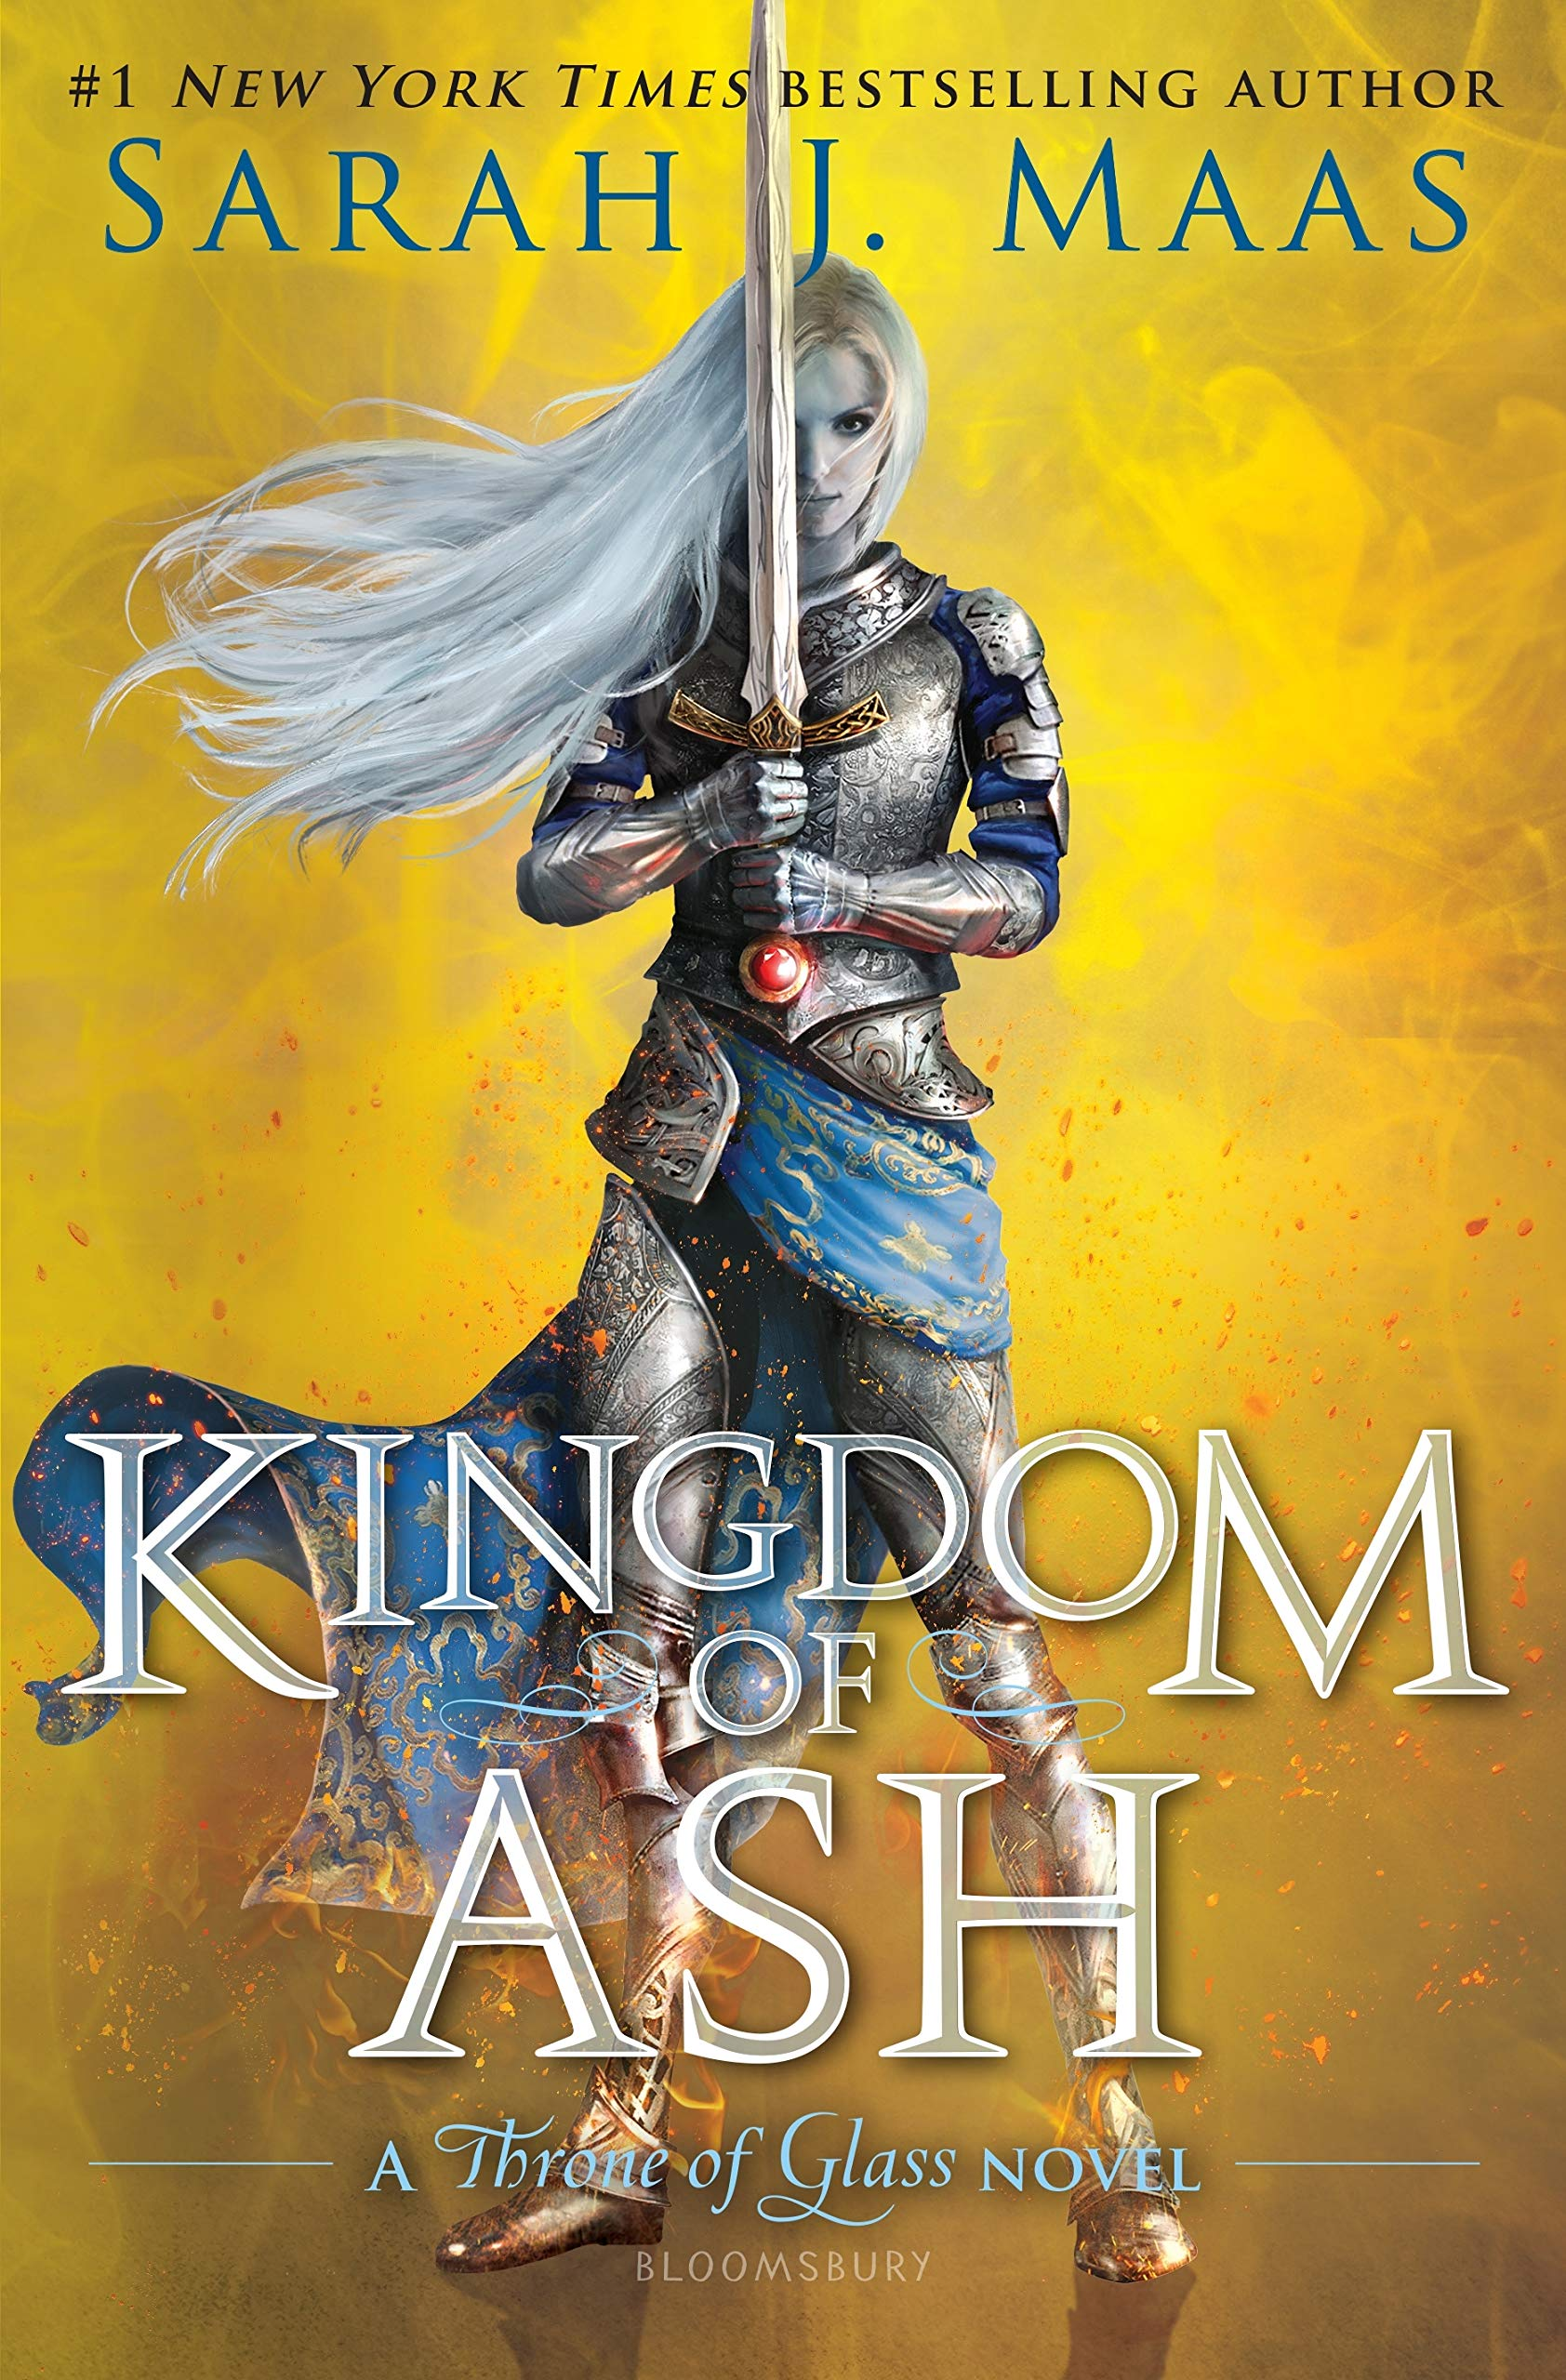 Amazon.com: Kingdom of Ash (Throne of Glass) (9781619636101): Maas ...